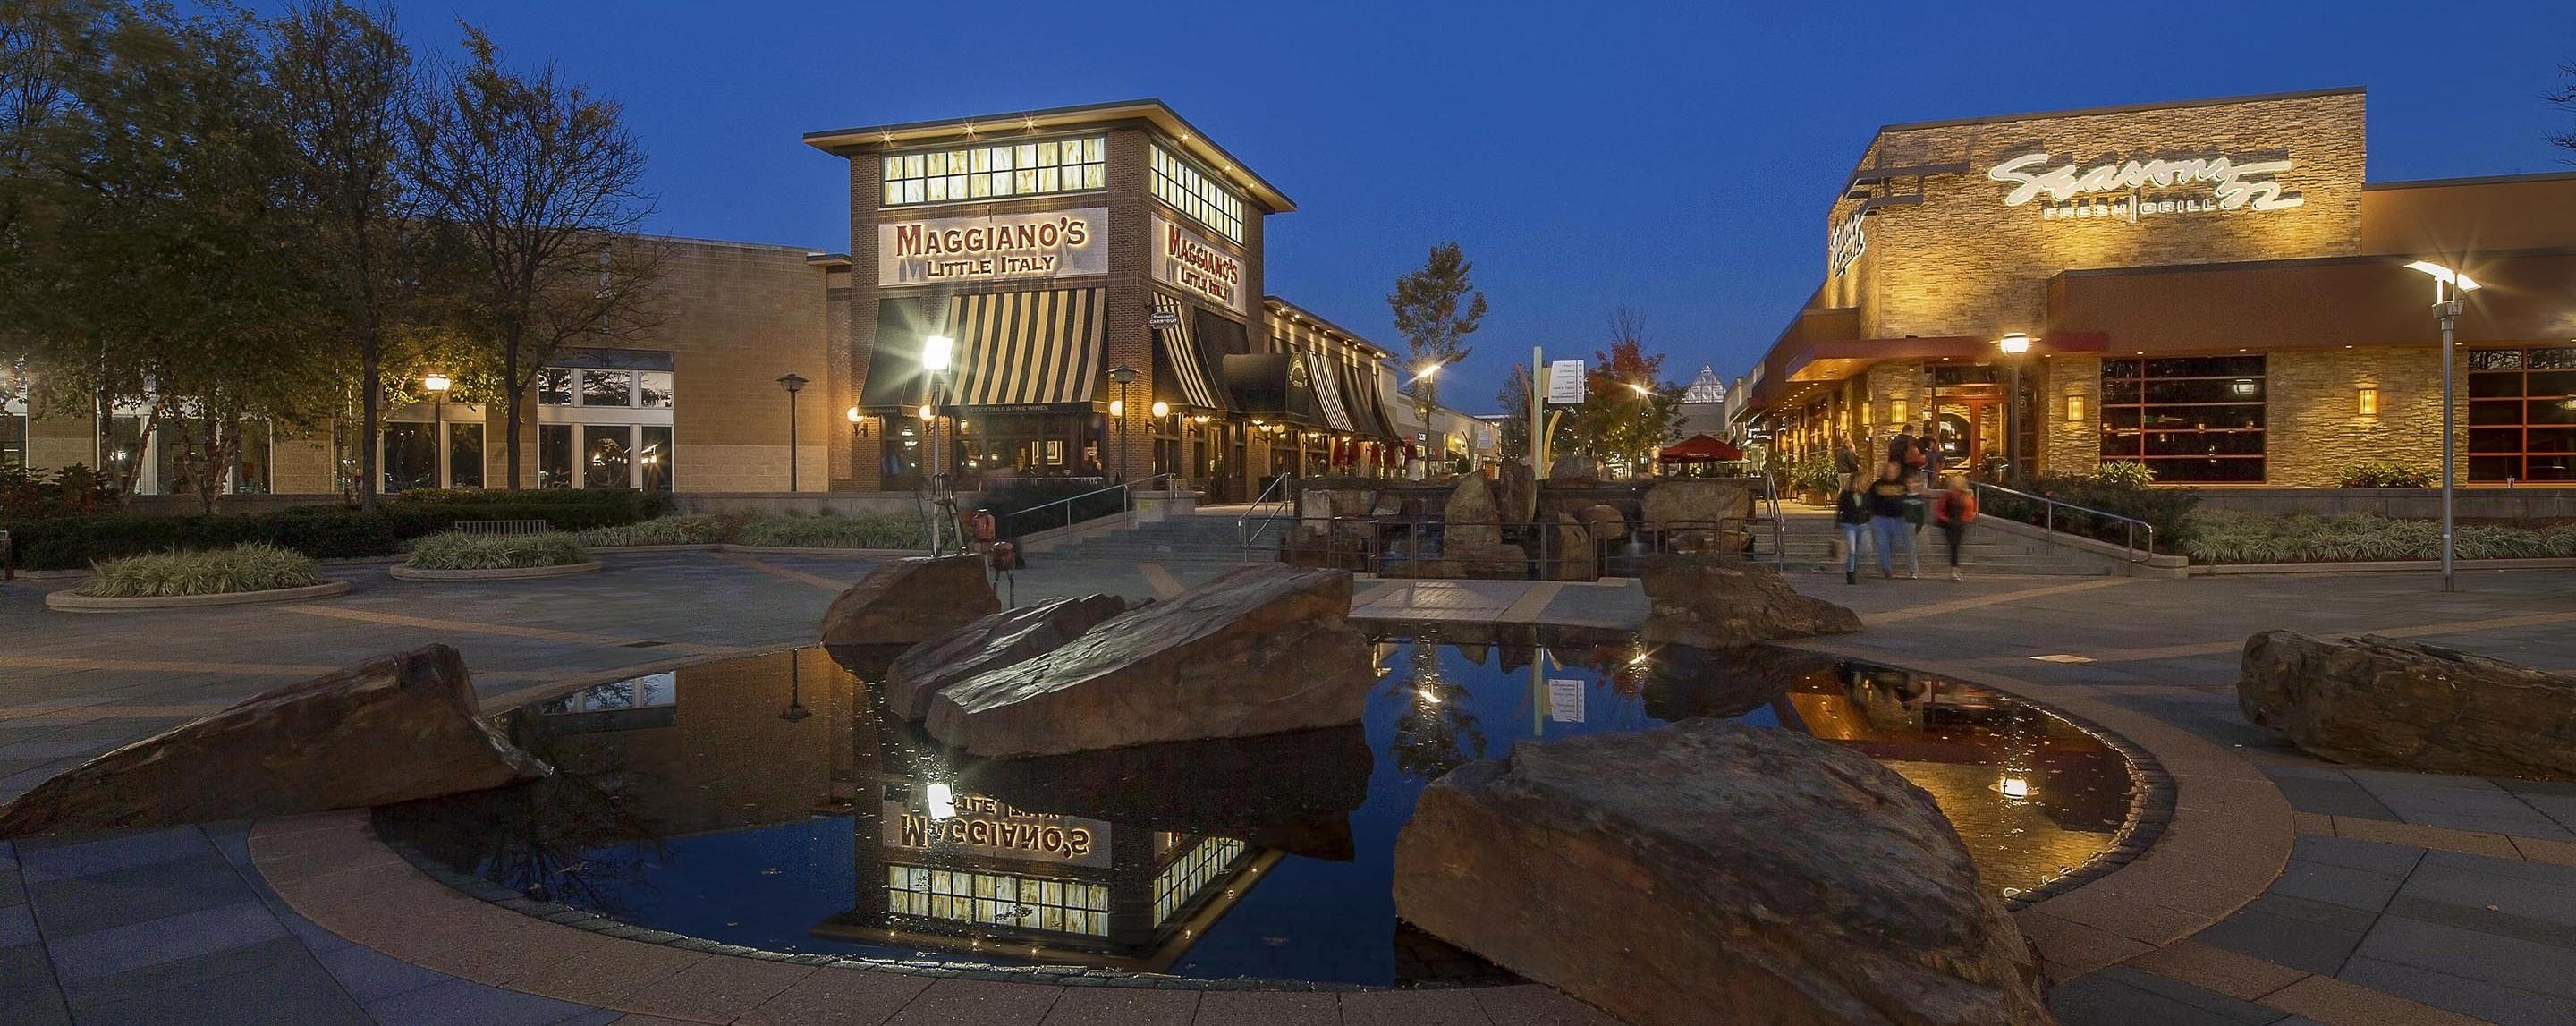 A manmade pond sits in the cement area in front of a shopping center outside.